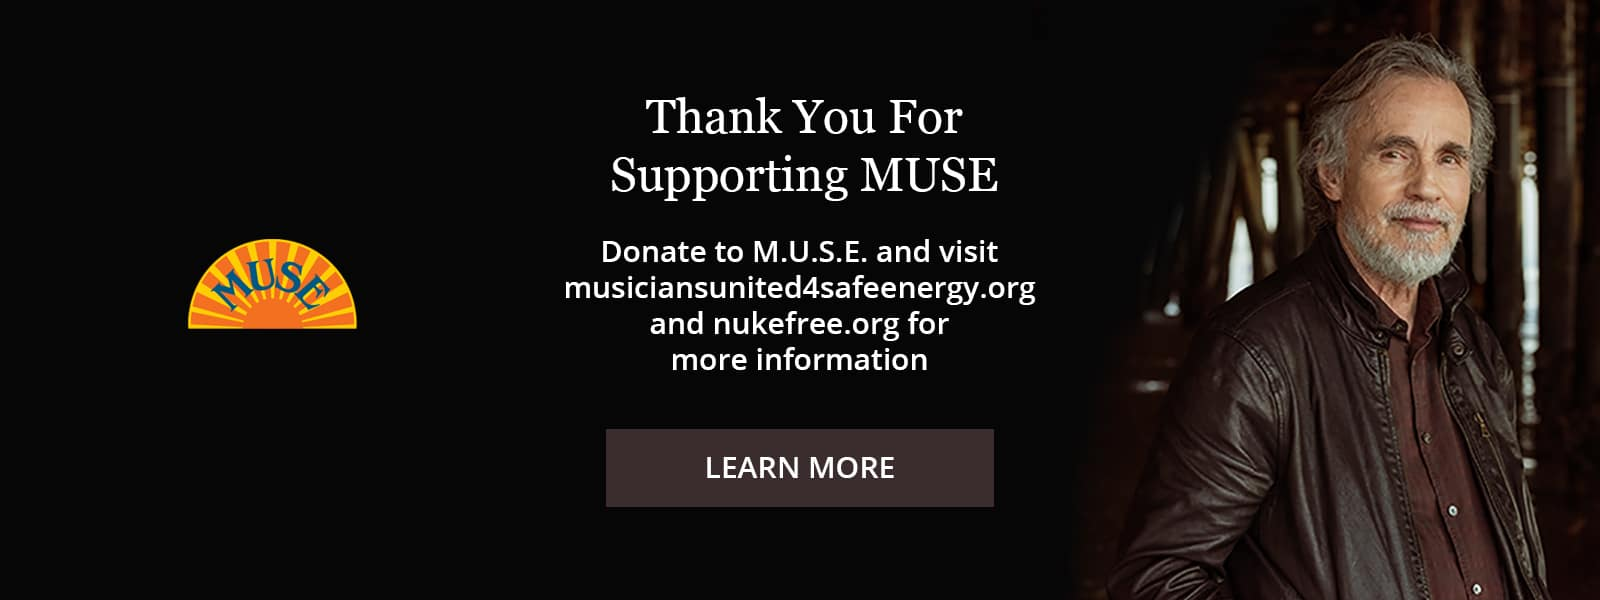 Thank you for supporting MUSE Learn More